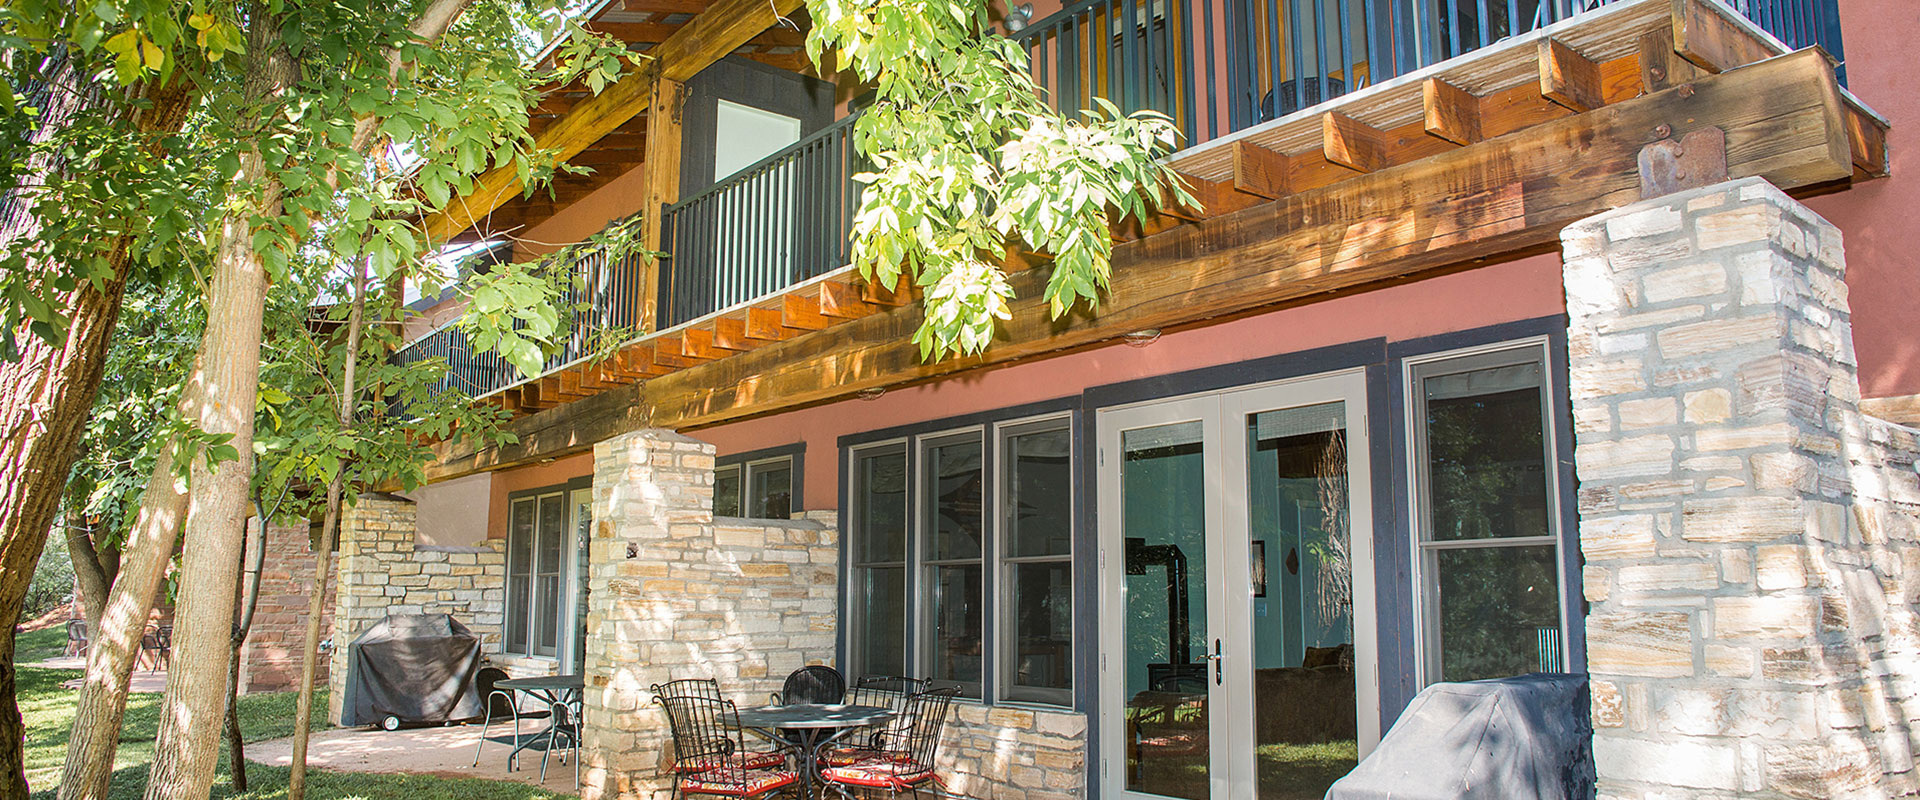 The evening sunset is obscured behind the imposing black unilluminated sandstone cliffs of Moab, Utah.